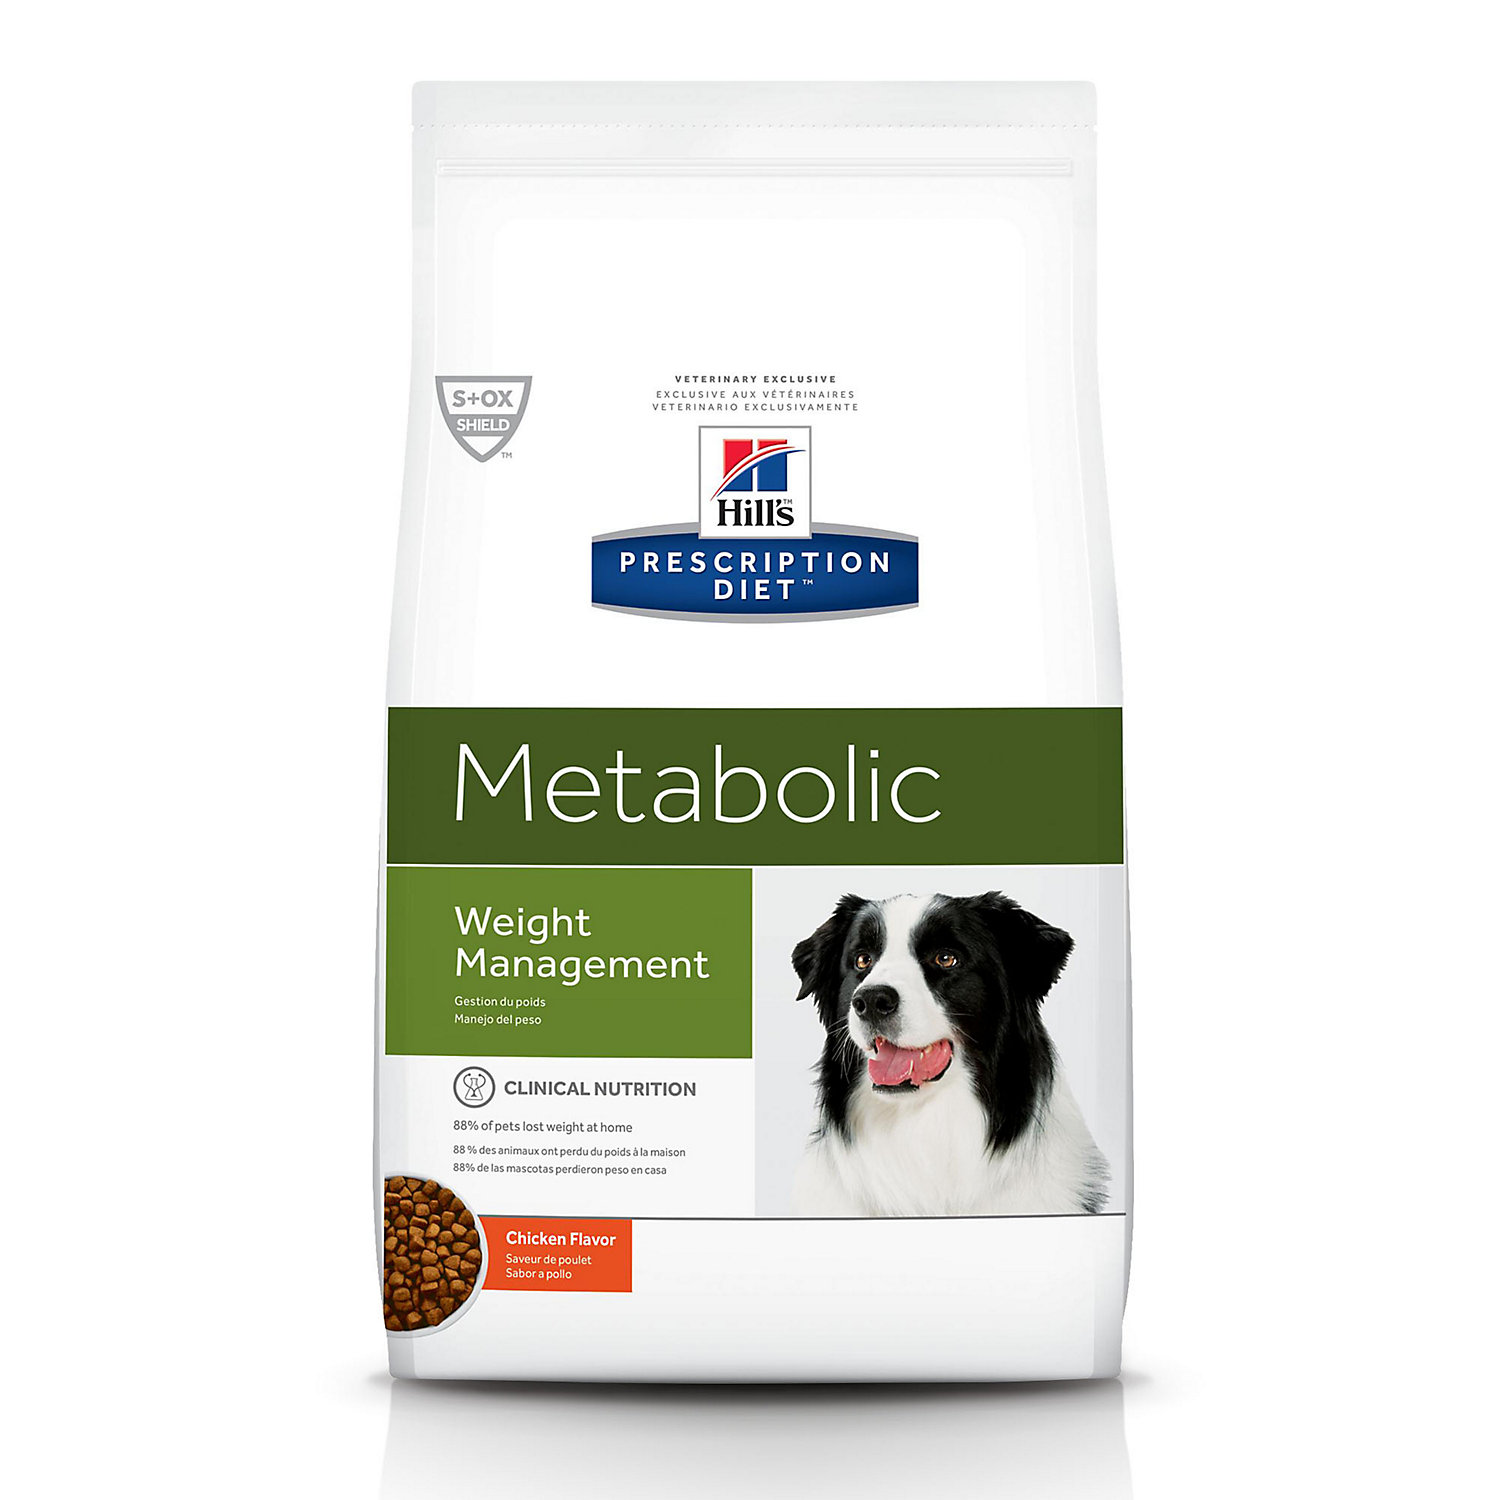 Hill's Prescription Diet Metabolic Canine Dry Dog Food